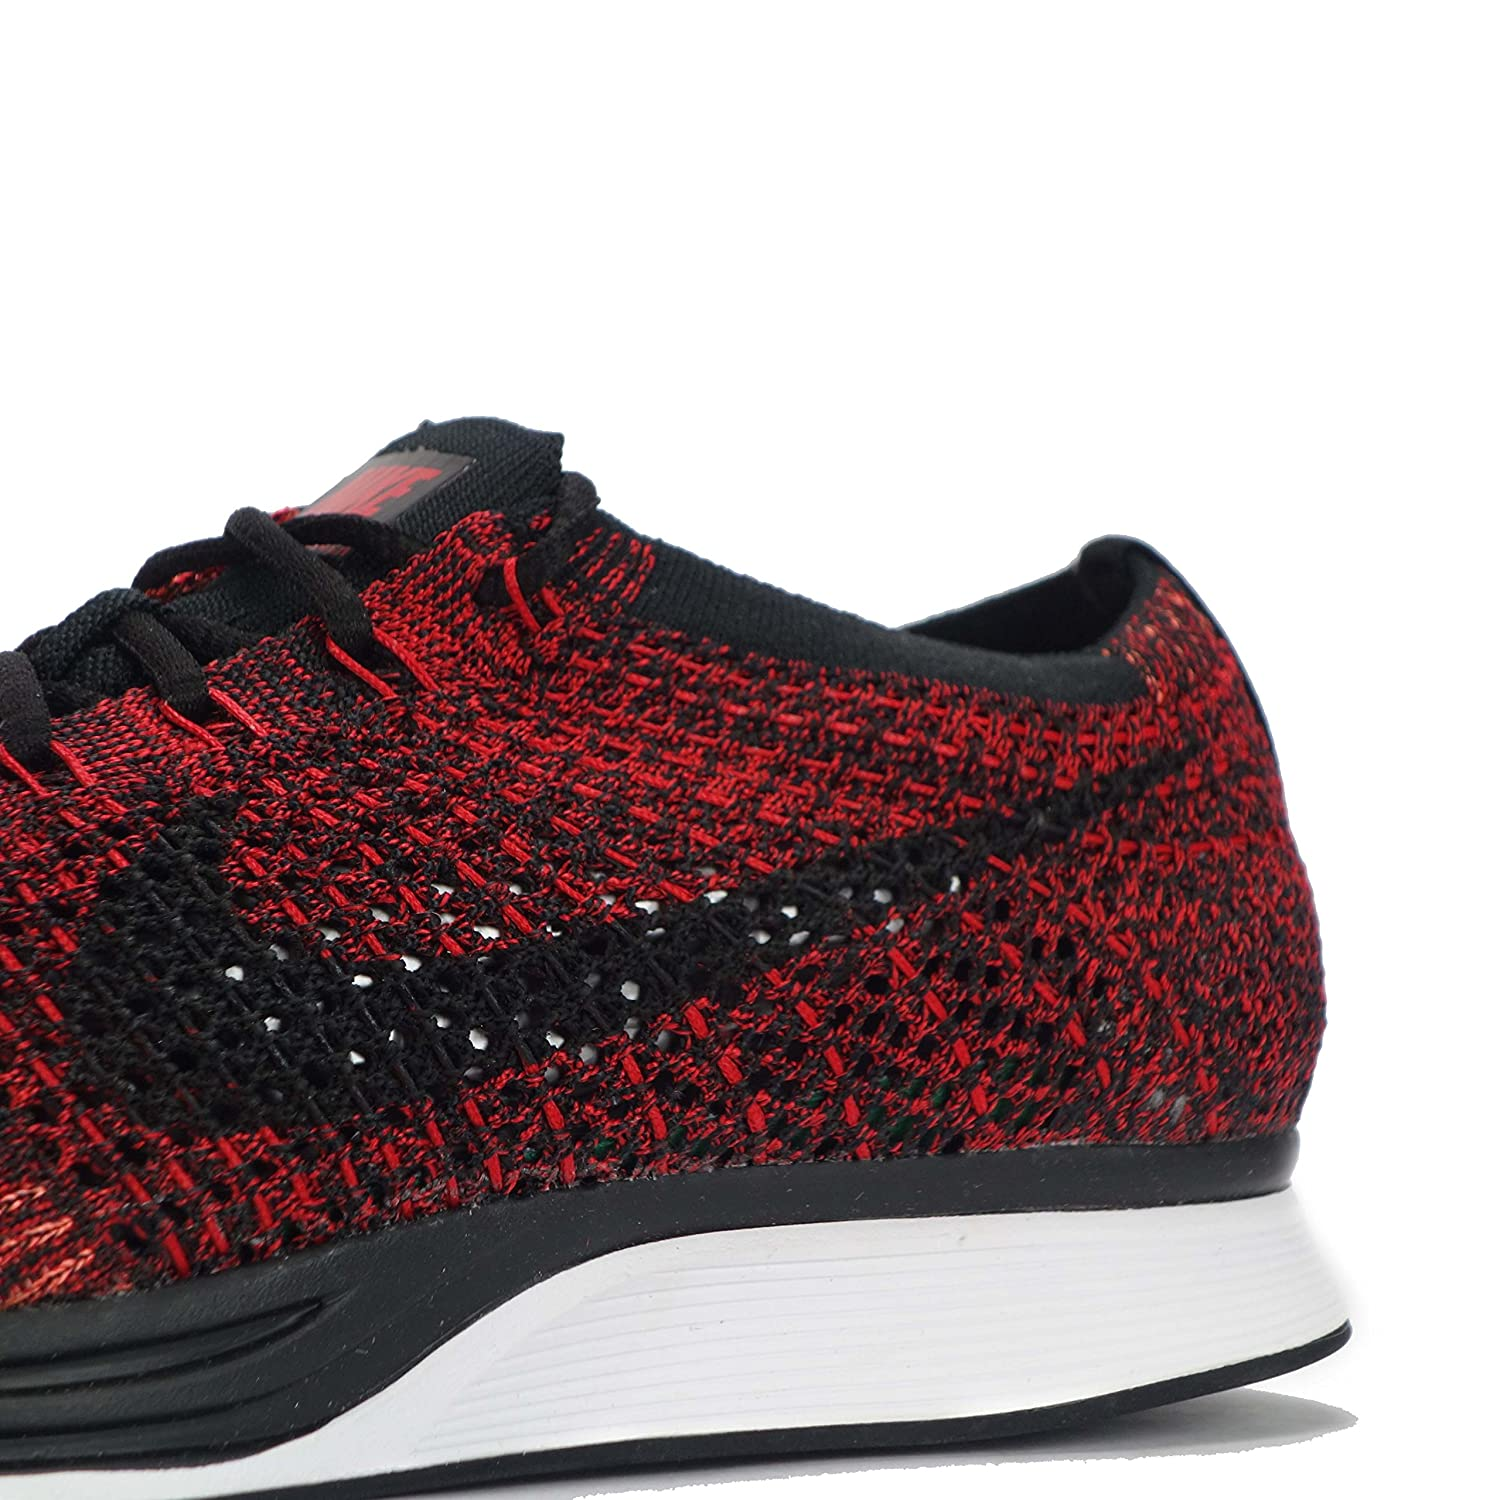 564639cf1764 Nike - Flyknit Racer Fire Rooster - 526628608 - Color  Burgundy - Size   9.0  Amazon.ca  Shoes   Handbags